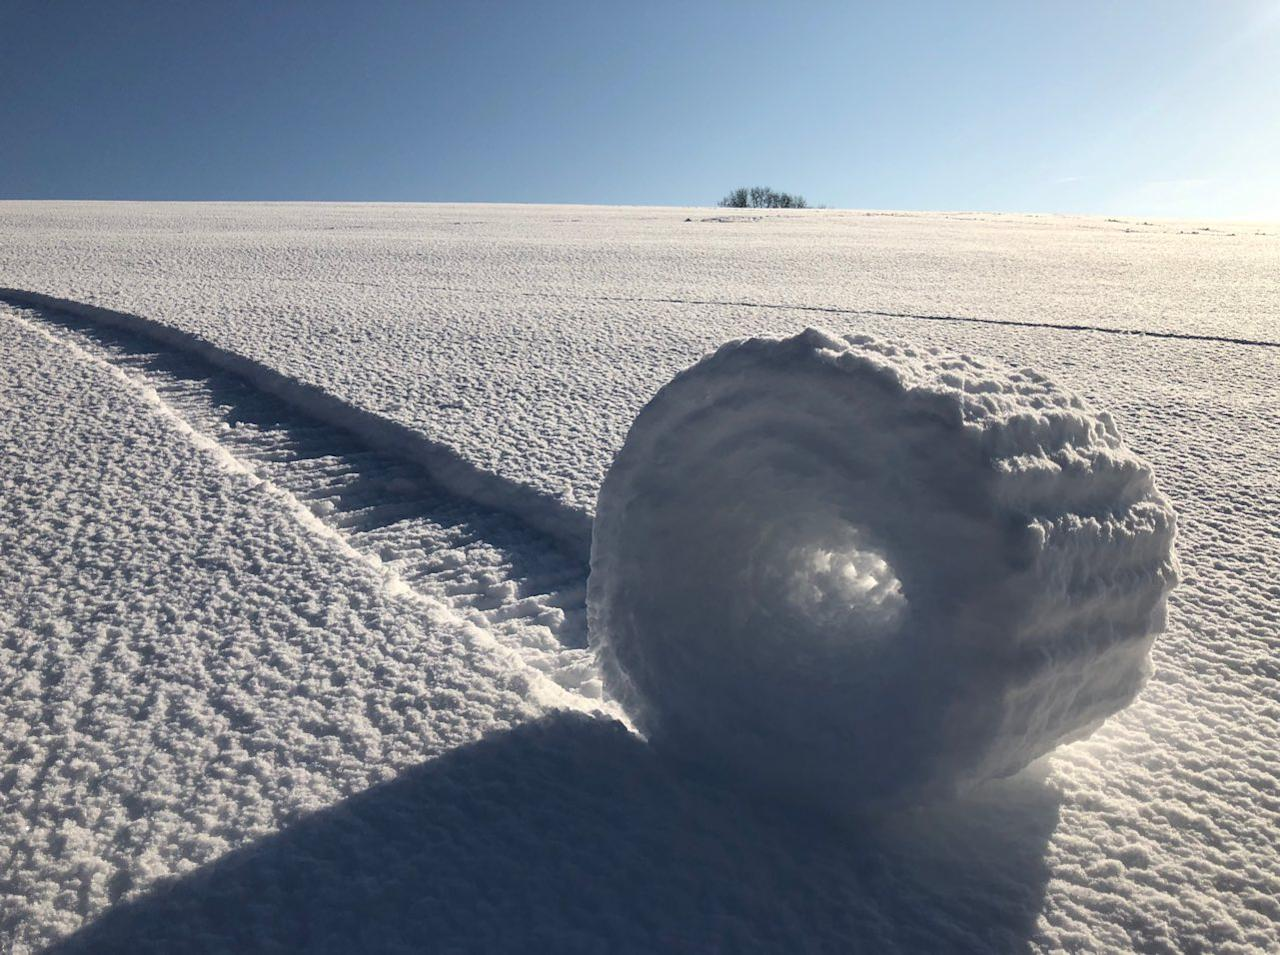 """Snow Rollers in Wiltshire"" by Brian Bayliss, which was second runner up (Picture: PA)"